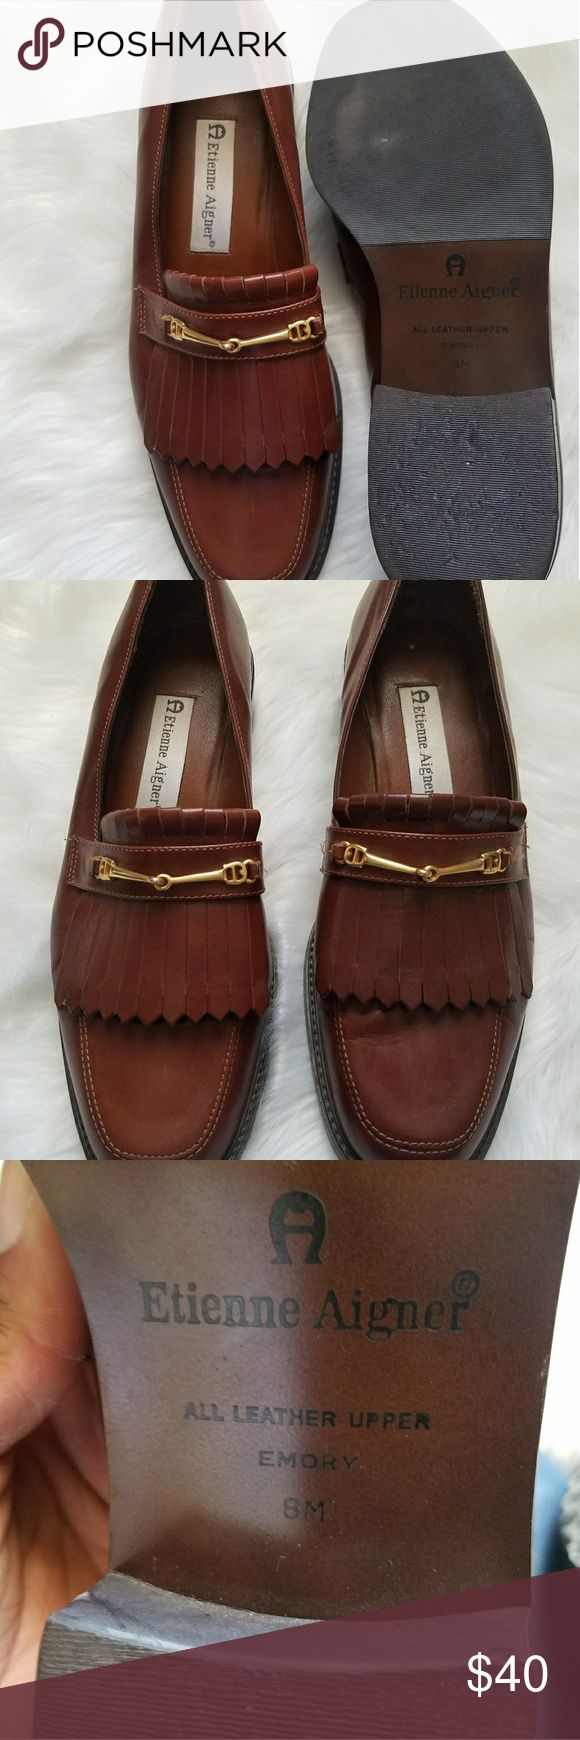 Etienne Aigner loafers Etienne Aigner loafers is good condition offers welcome Etienne Aigner Shoes Flats & Loafers